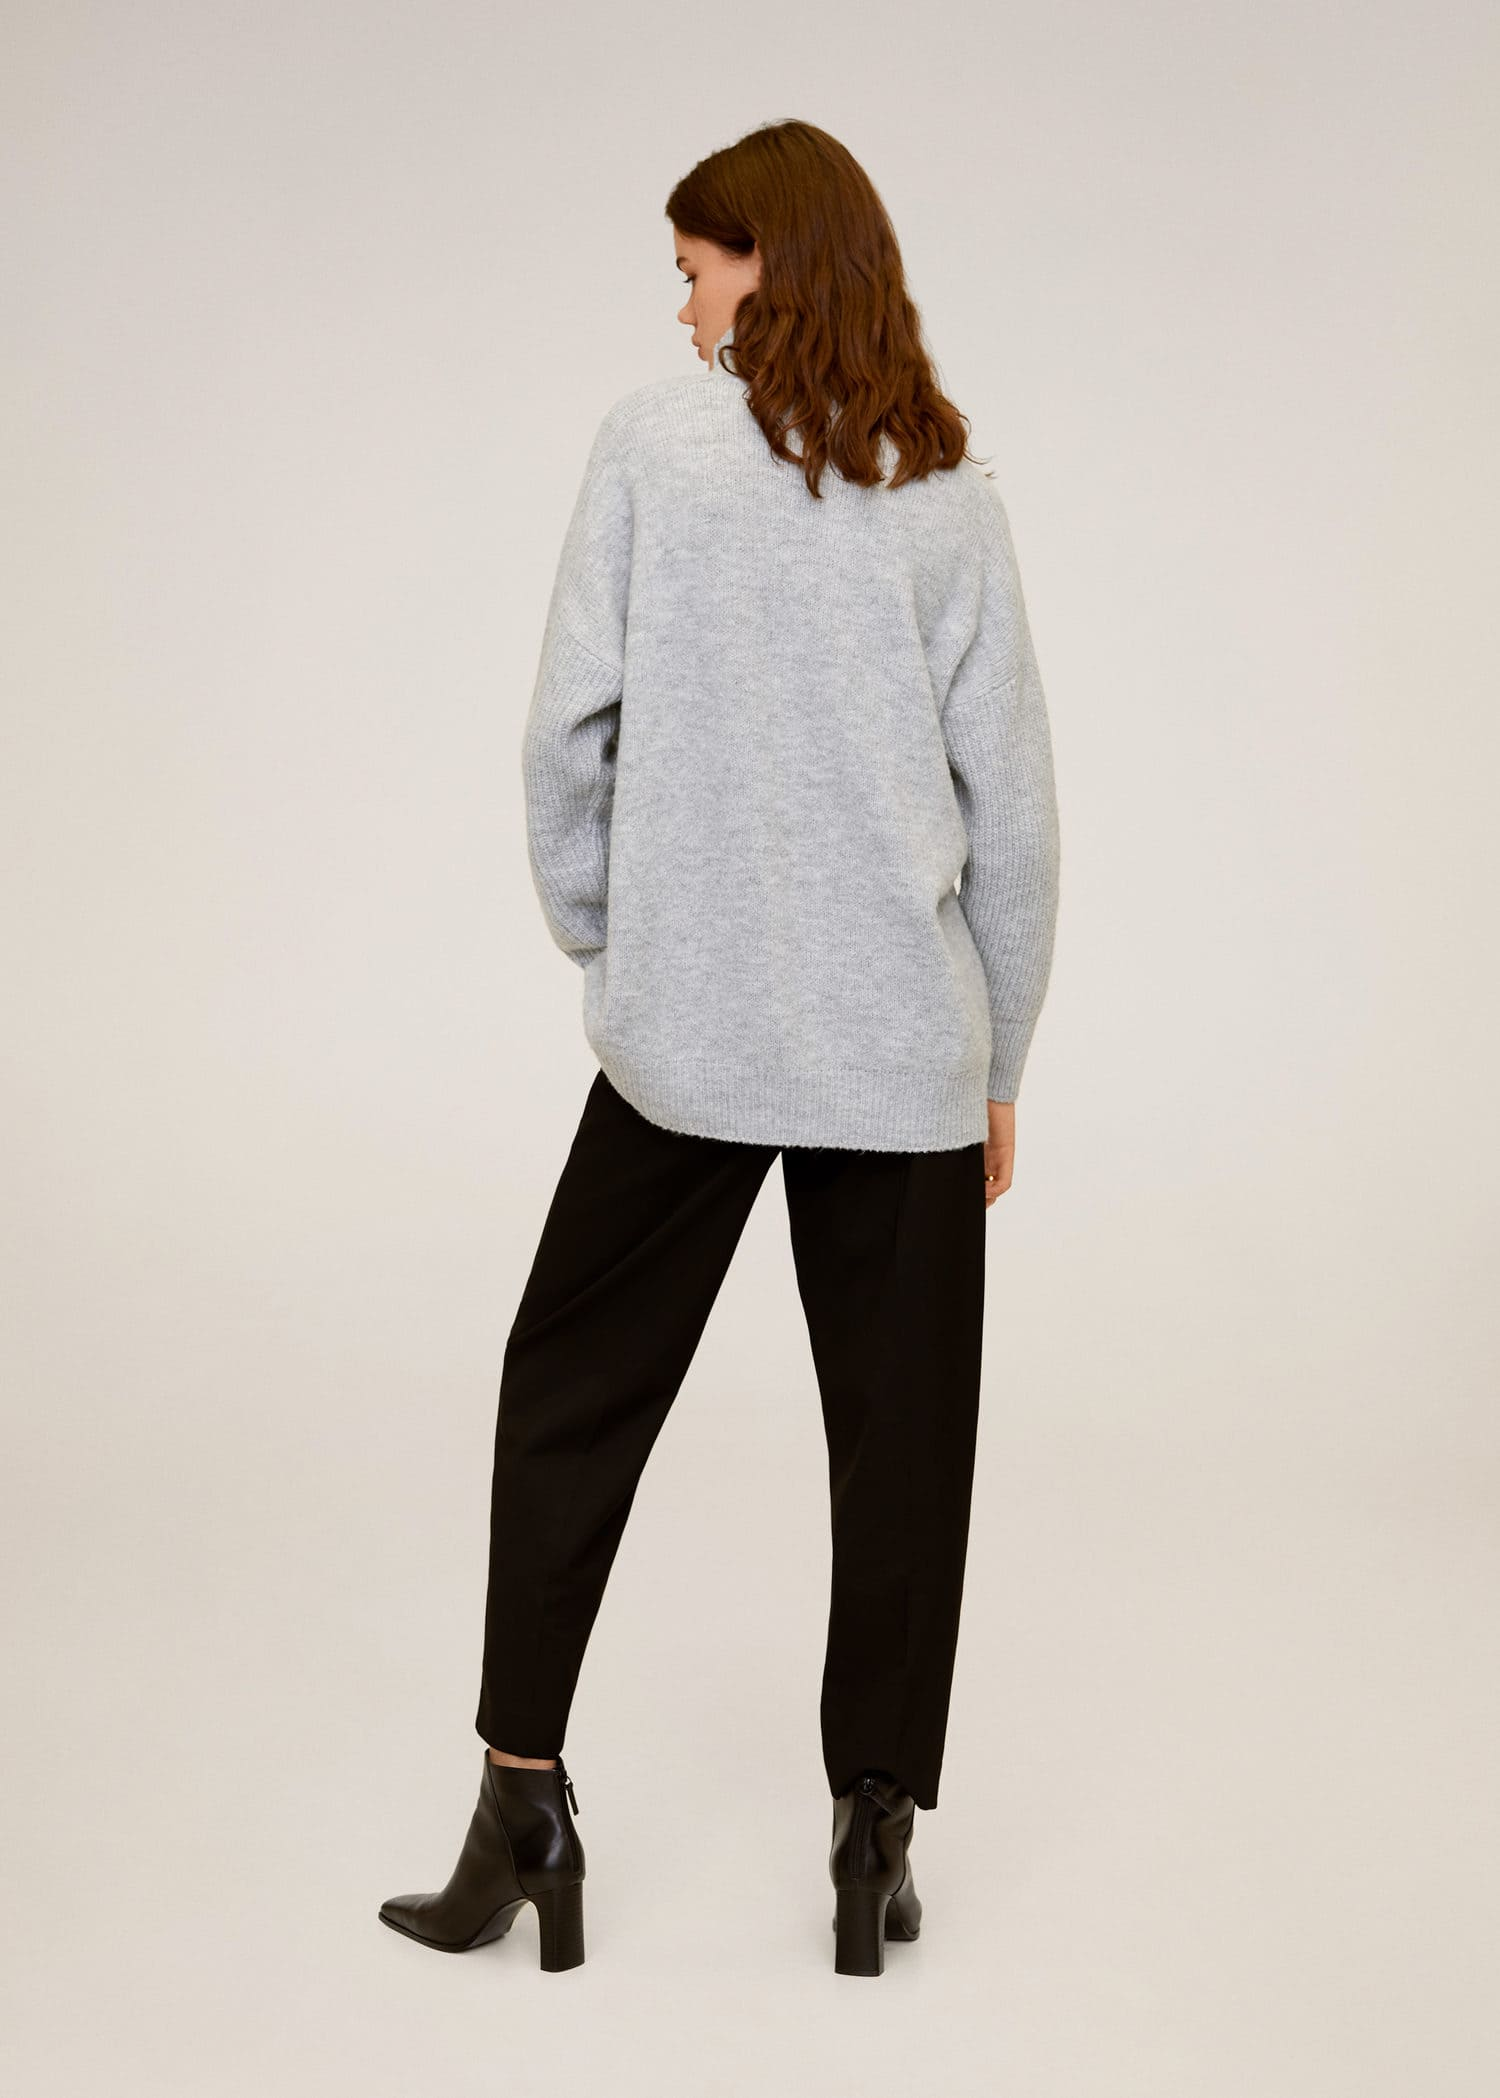 Turtle neck oversize sweater Woman | Mango Macao